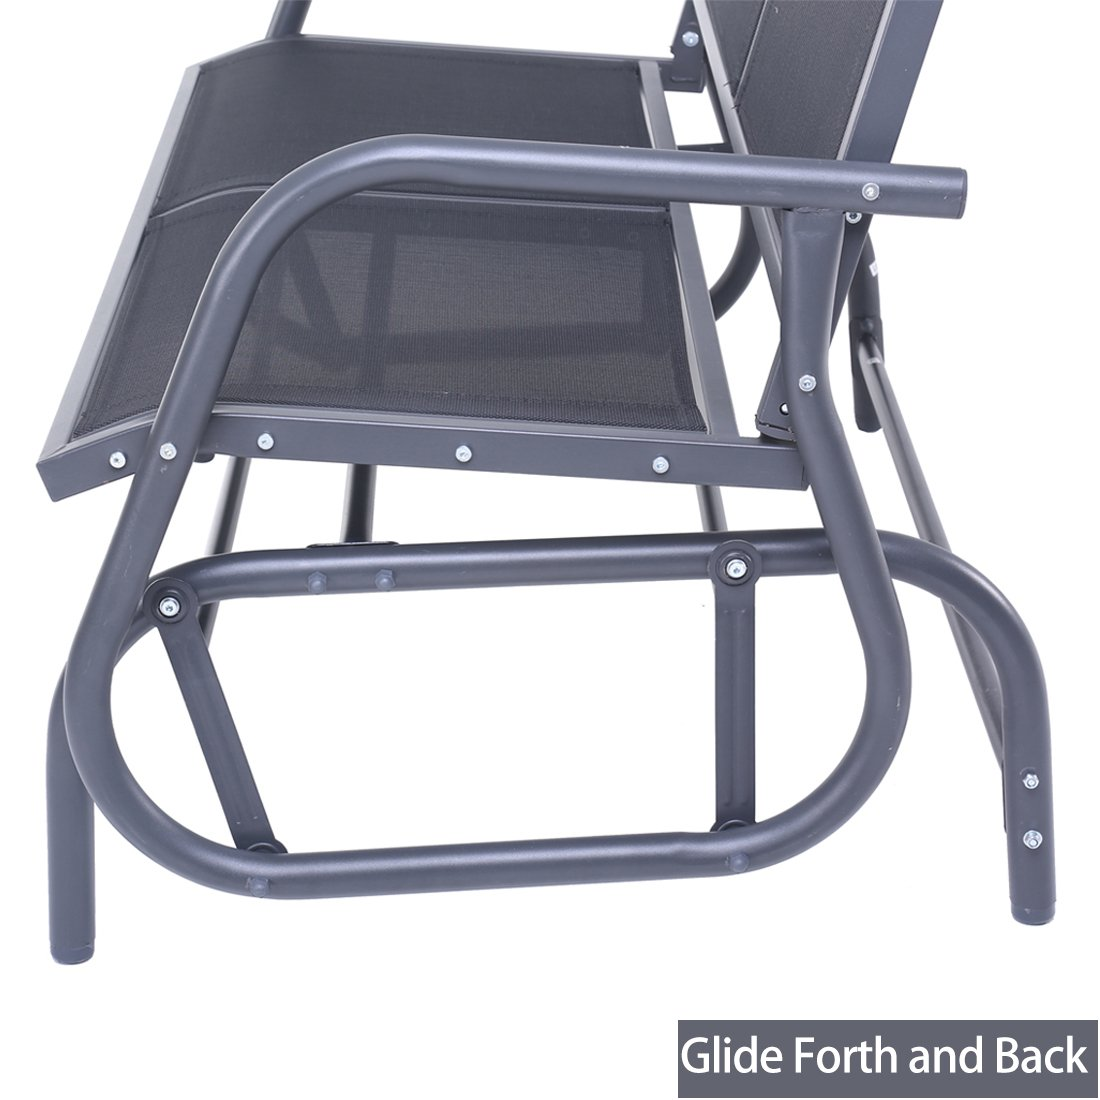 SUPERJARE Outdoor Swing Glider Chair, Patio Bench 2 Person, Garden Rocking Seating - Gray by SUPERJARE (Image #5)